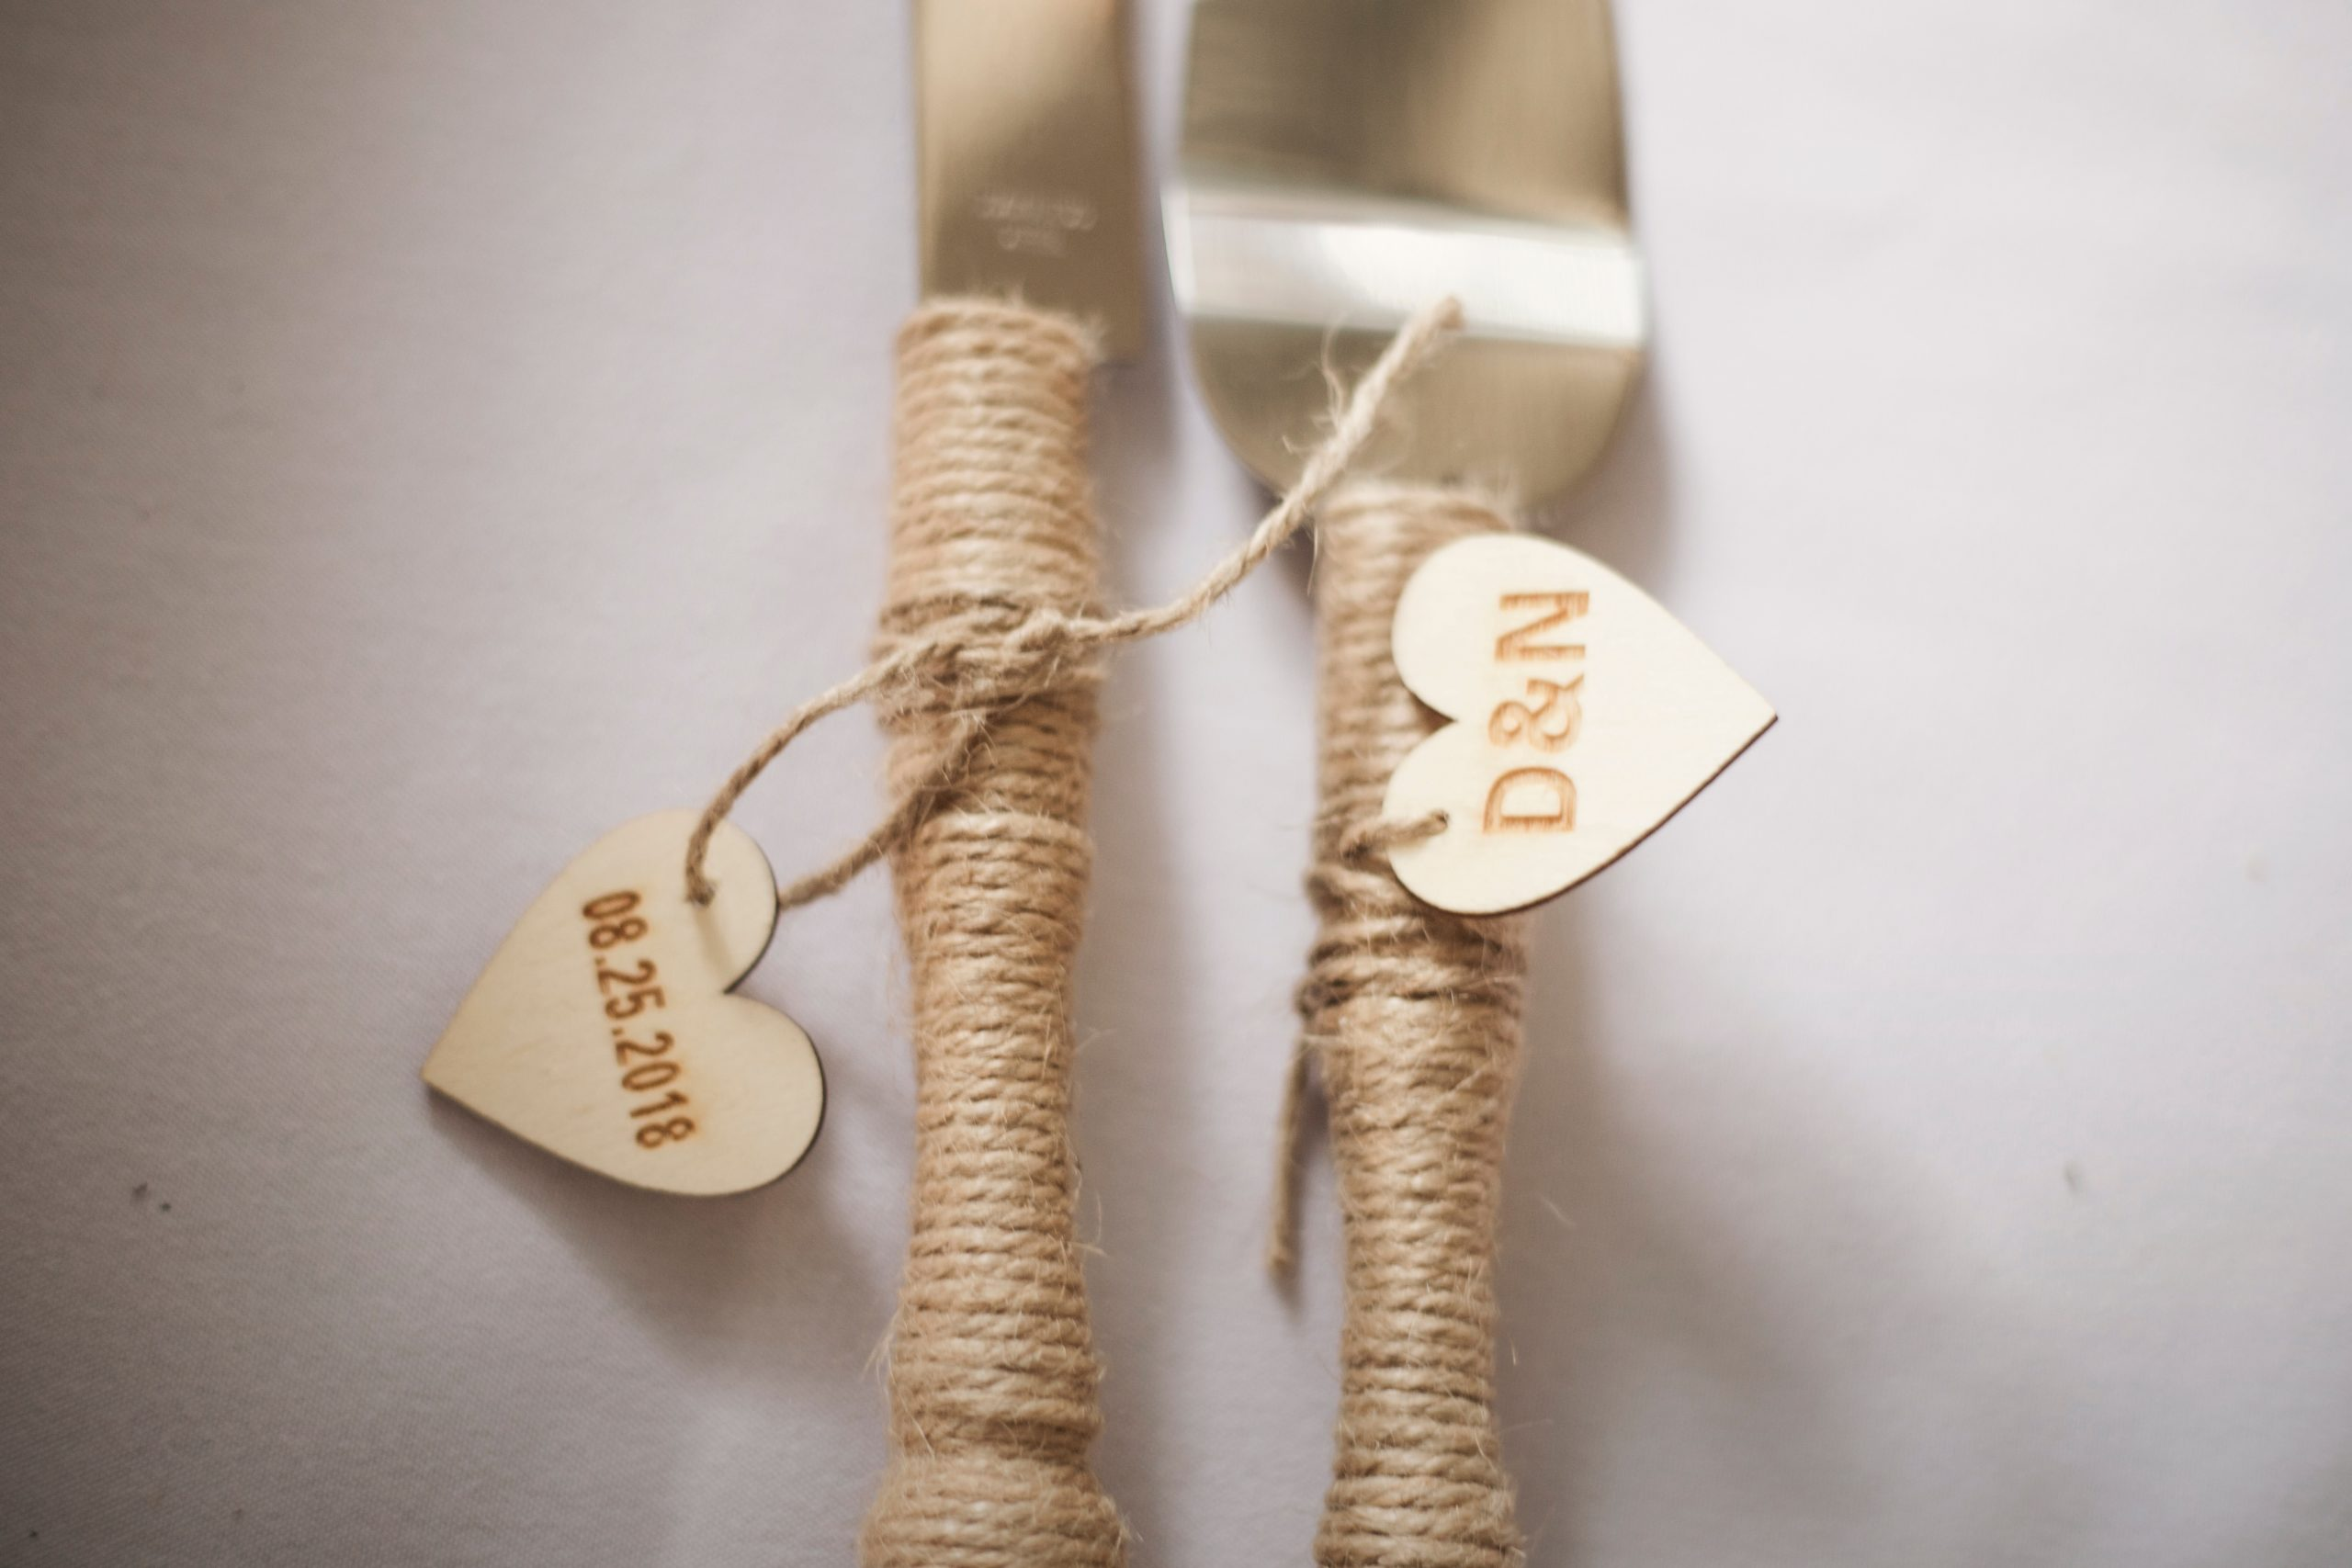 How to choose the perfect wedding date